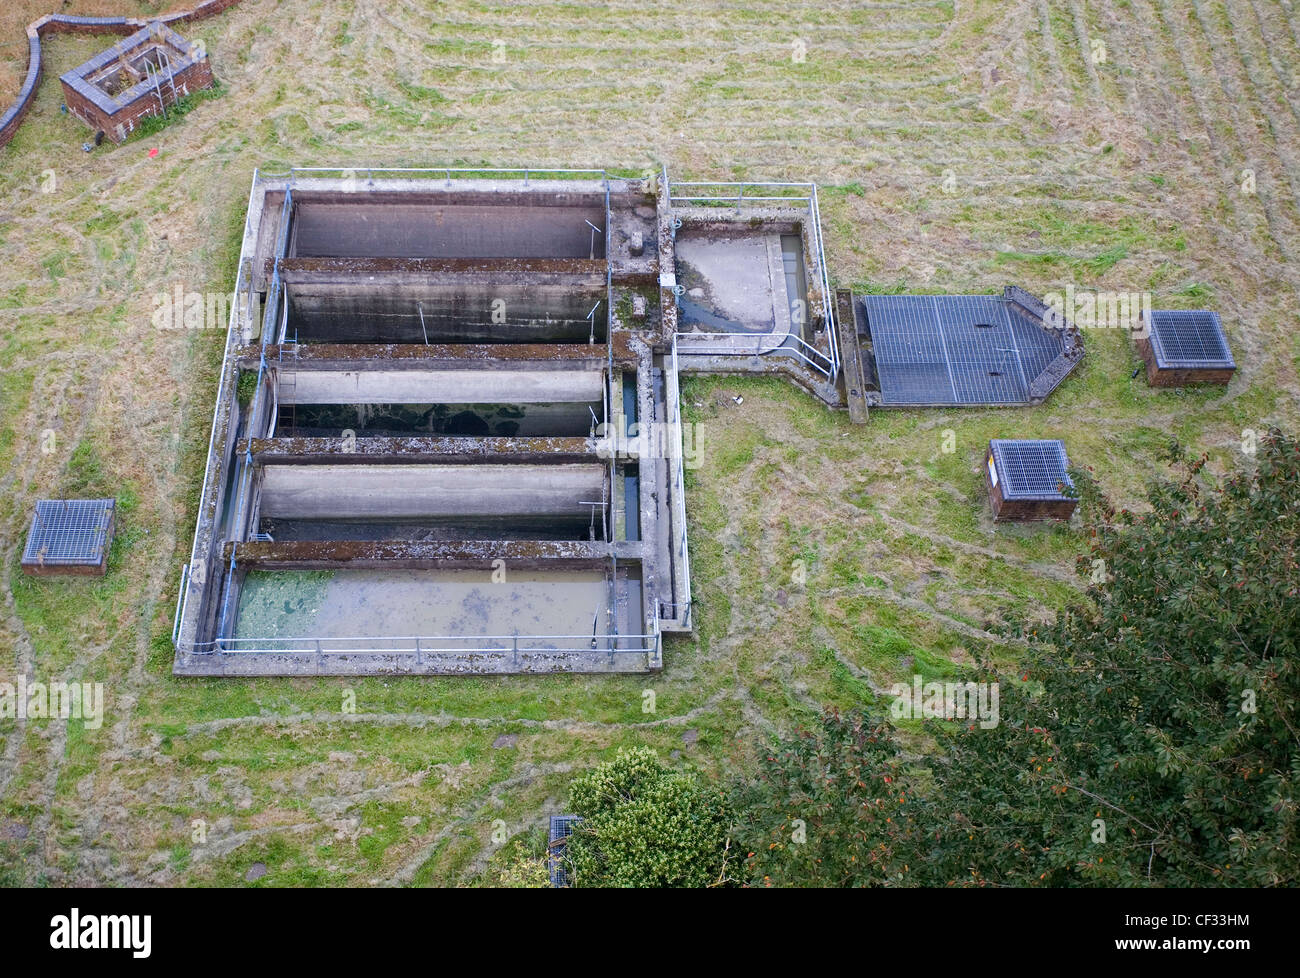 Settling tanks at a sewage treatment works, viewed from the Pontcysyllte Aqueduct. - Stock Image